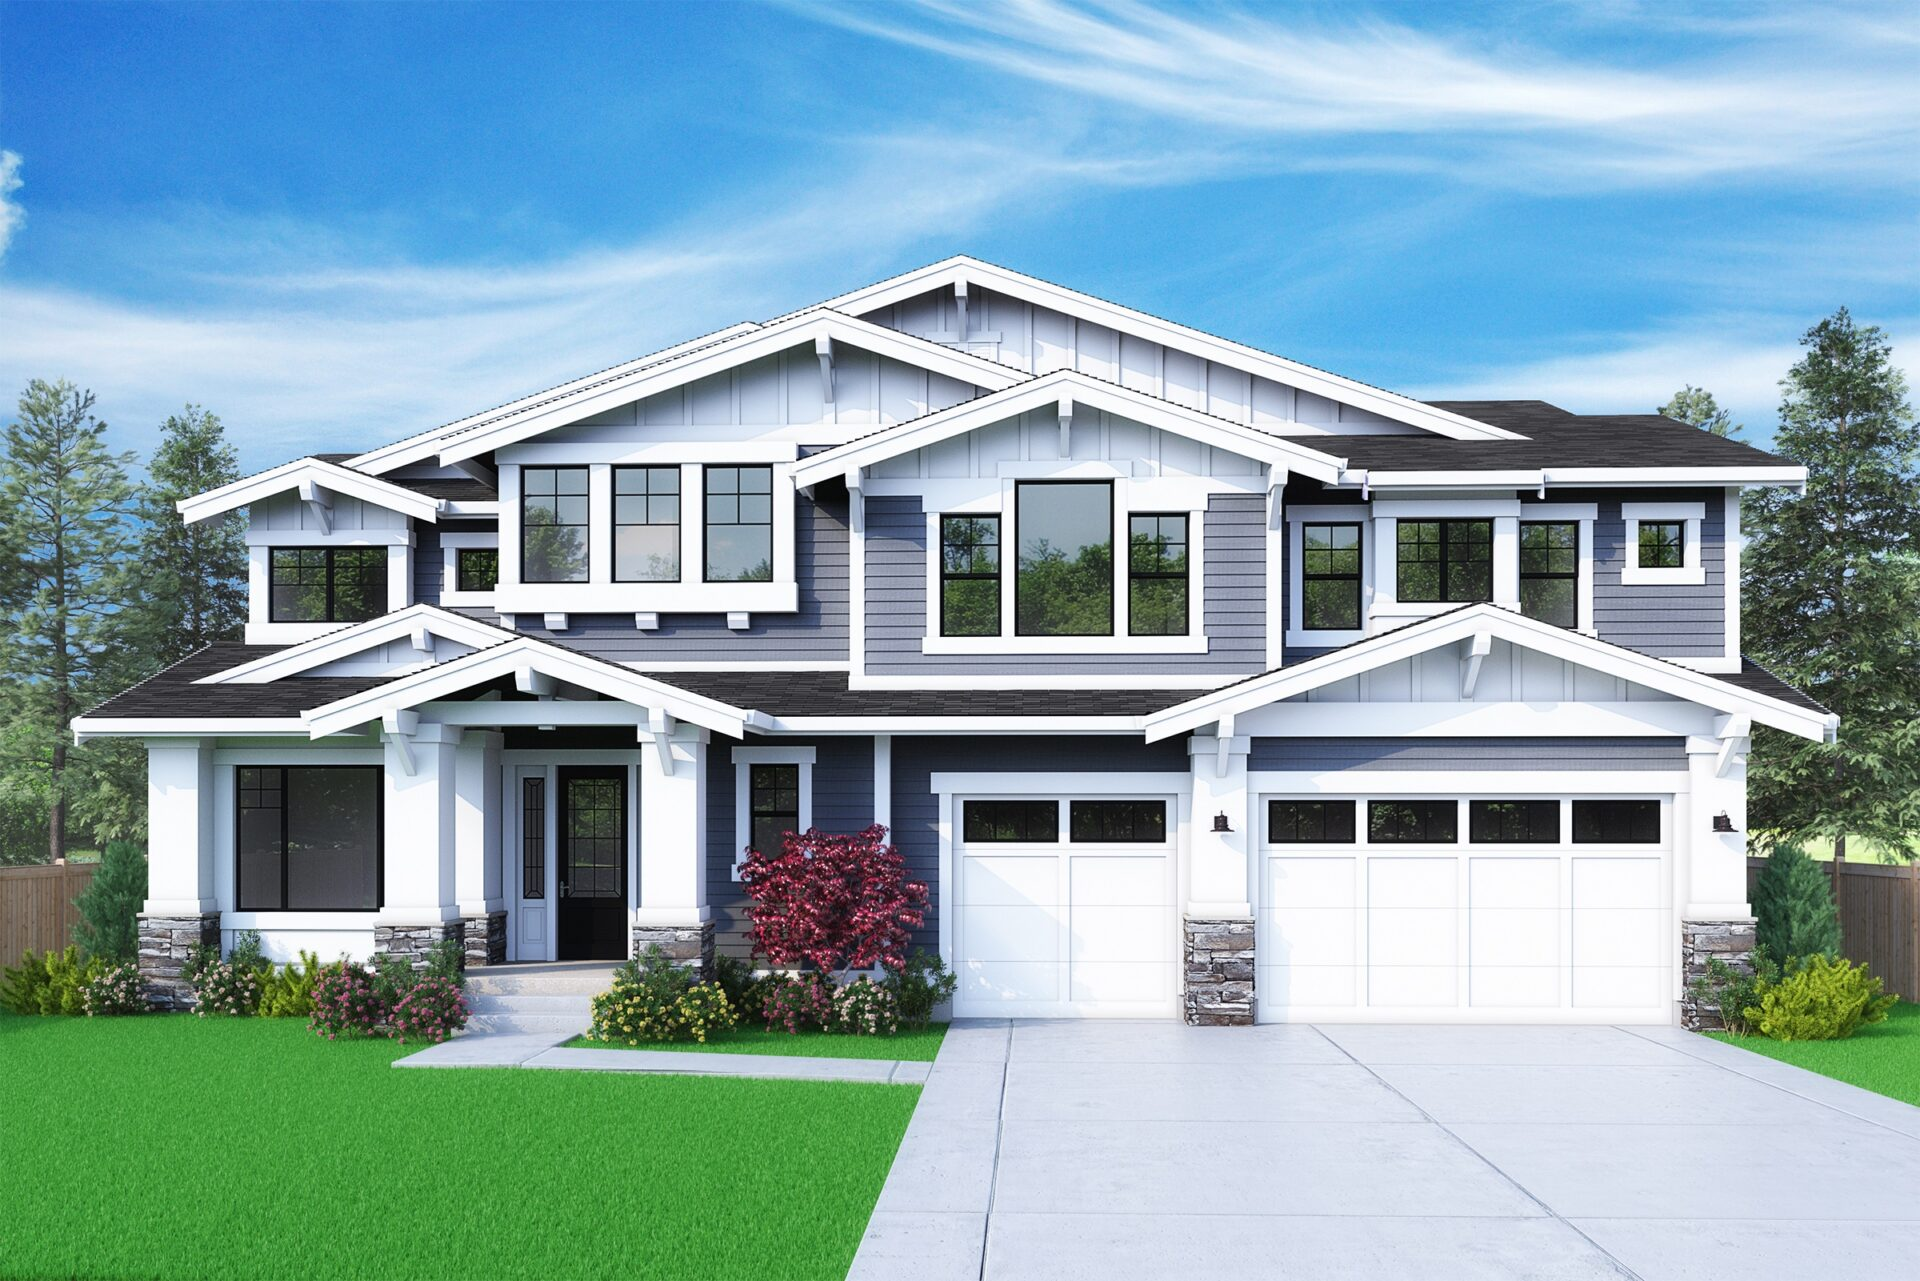 View our new luxury home construction on 1236 166th Ave SE, in Bellevue, WA from MN Custom Homes